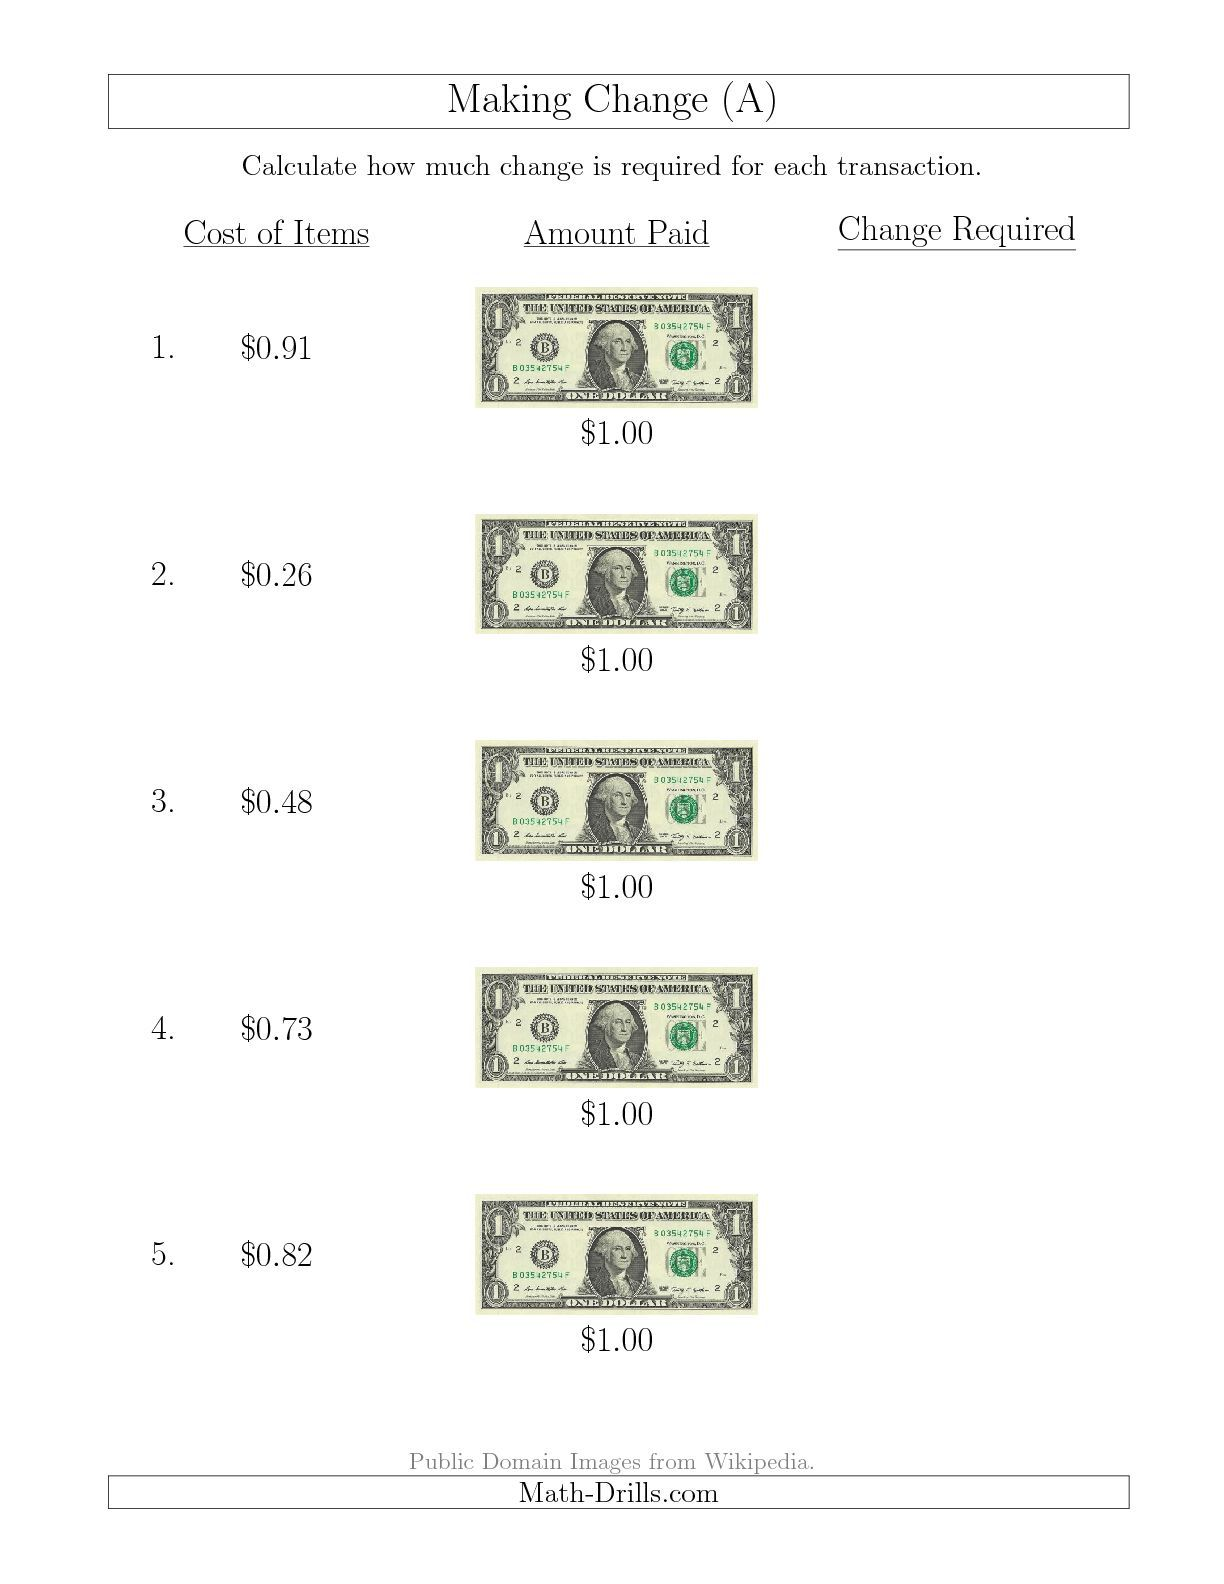 The Making Change From U S 1 Bills A Math Worksheet From The Money Worksheet Page At Math Drills Com Money Worksheets Money Math Money Math Worksheets